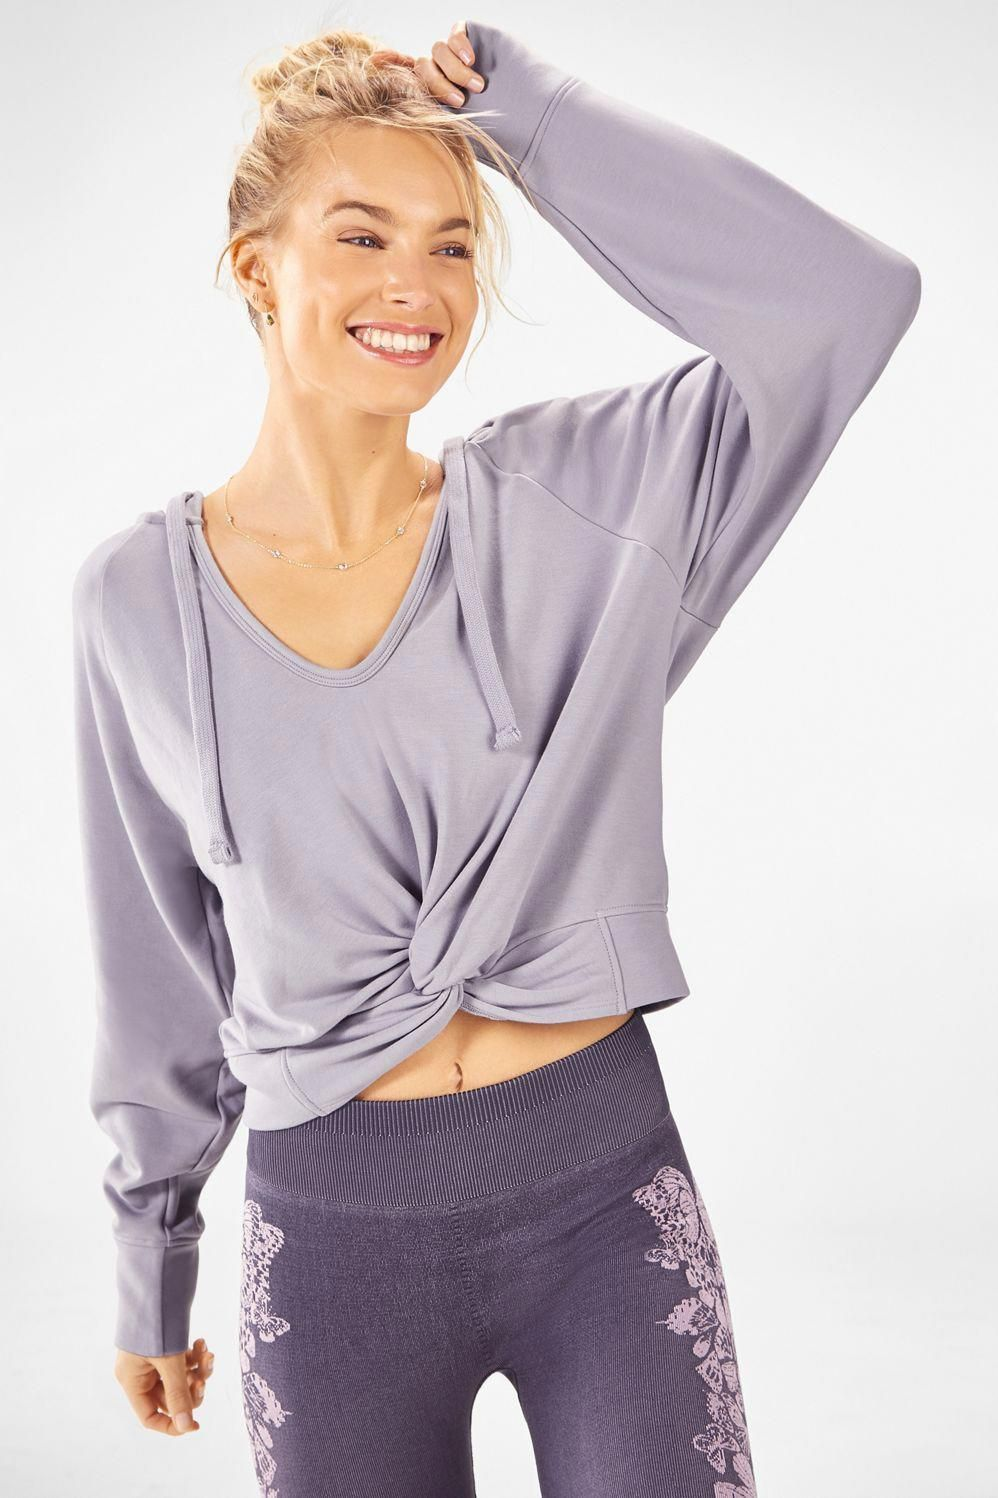 clothes for women,womens clothing,womens fashion,womans